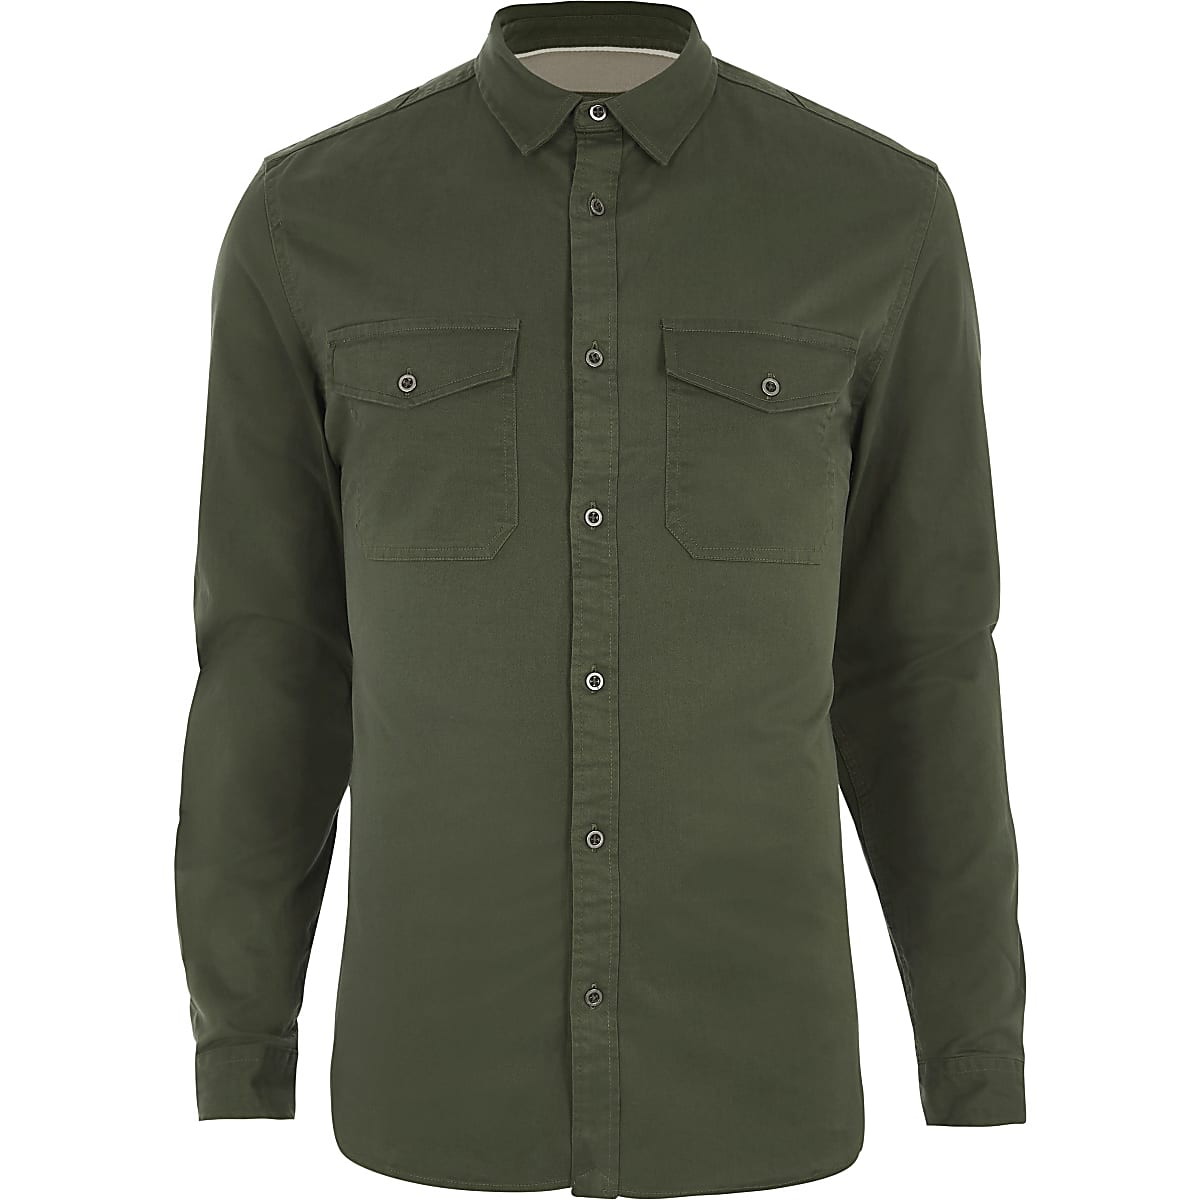 Khaki green muscle fit military shirt